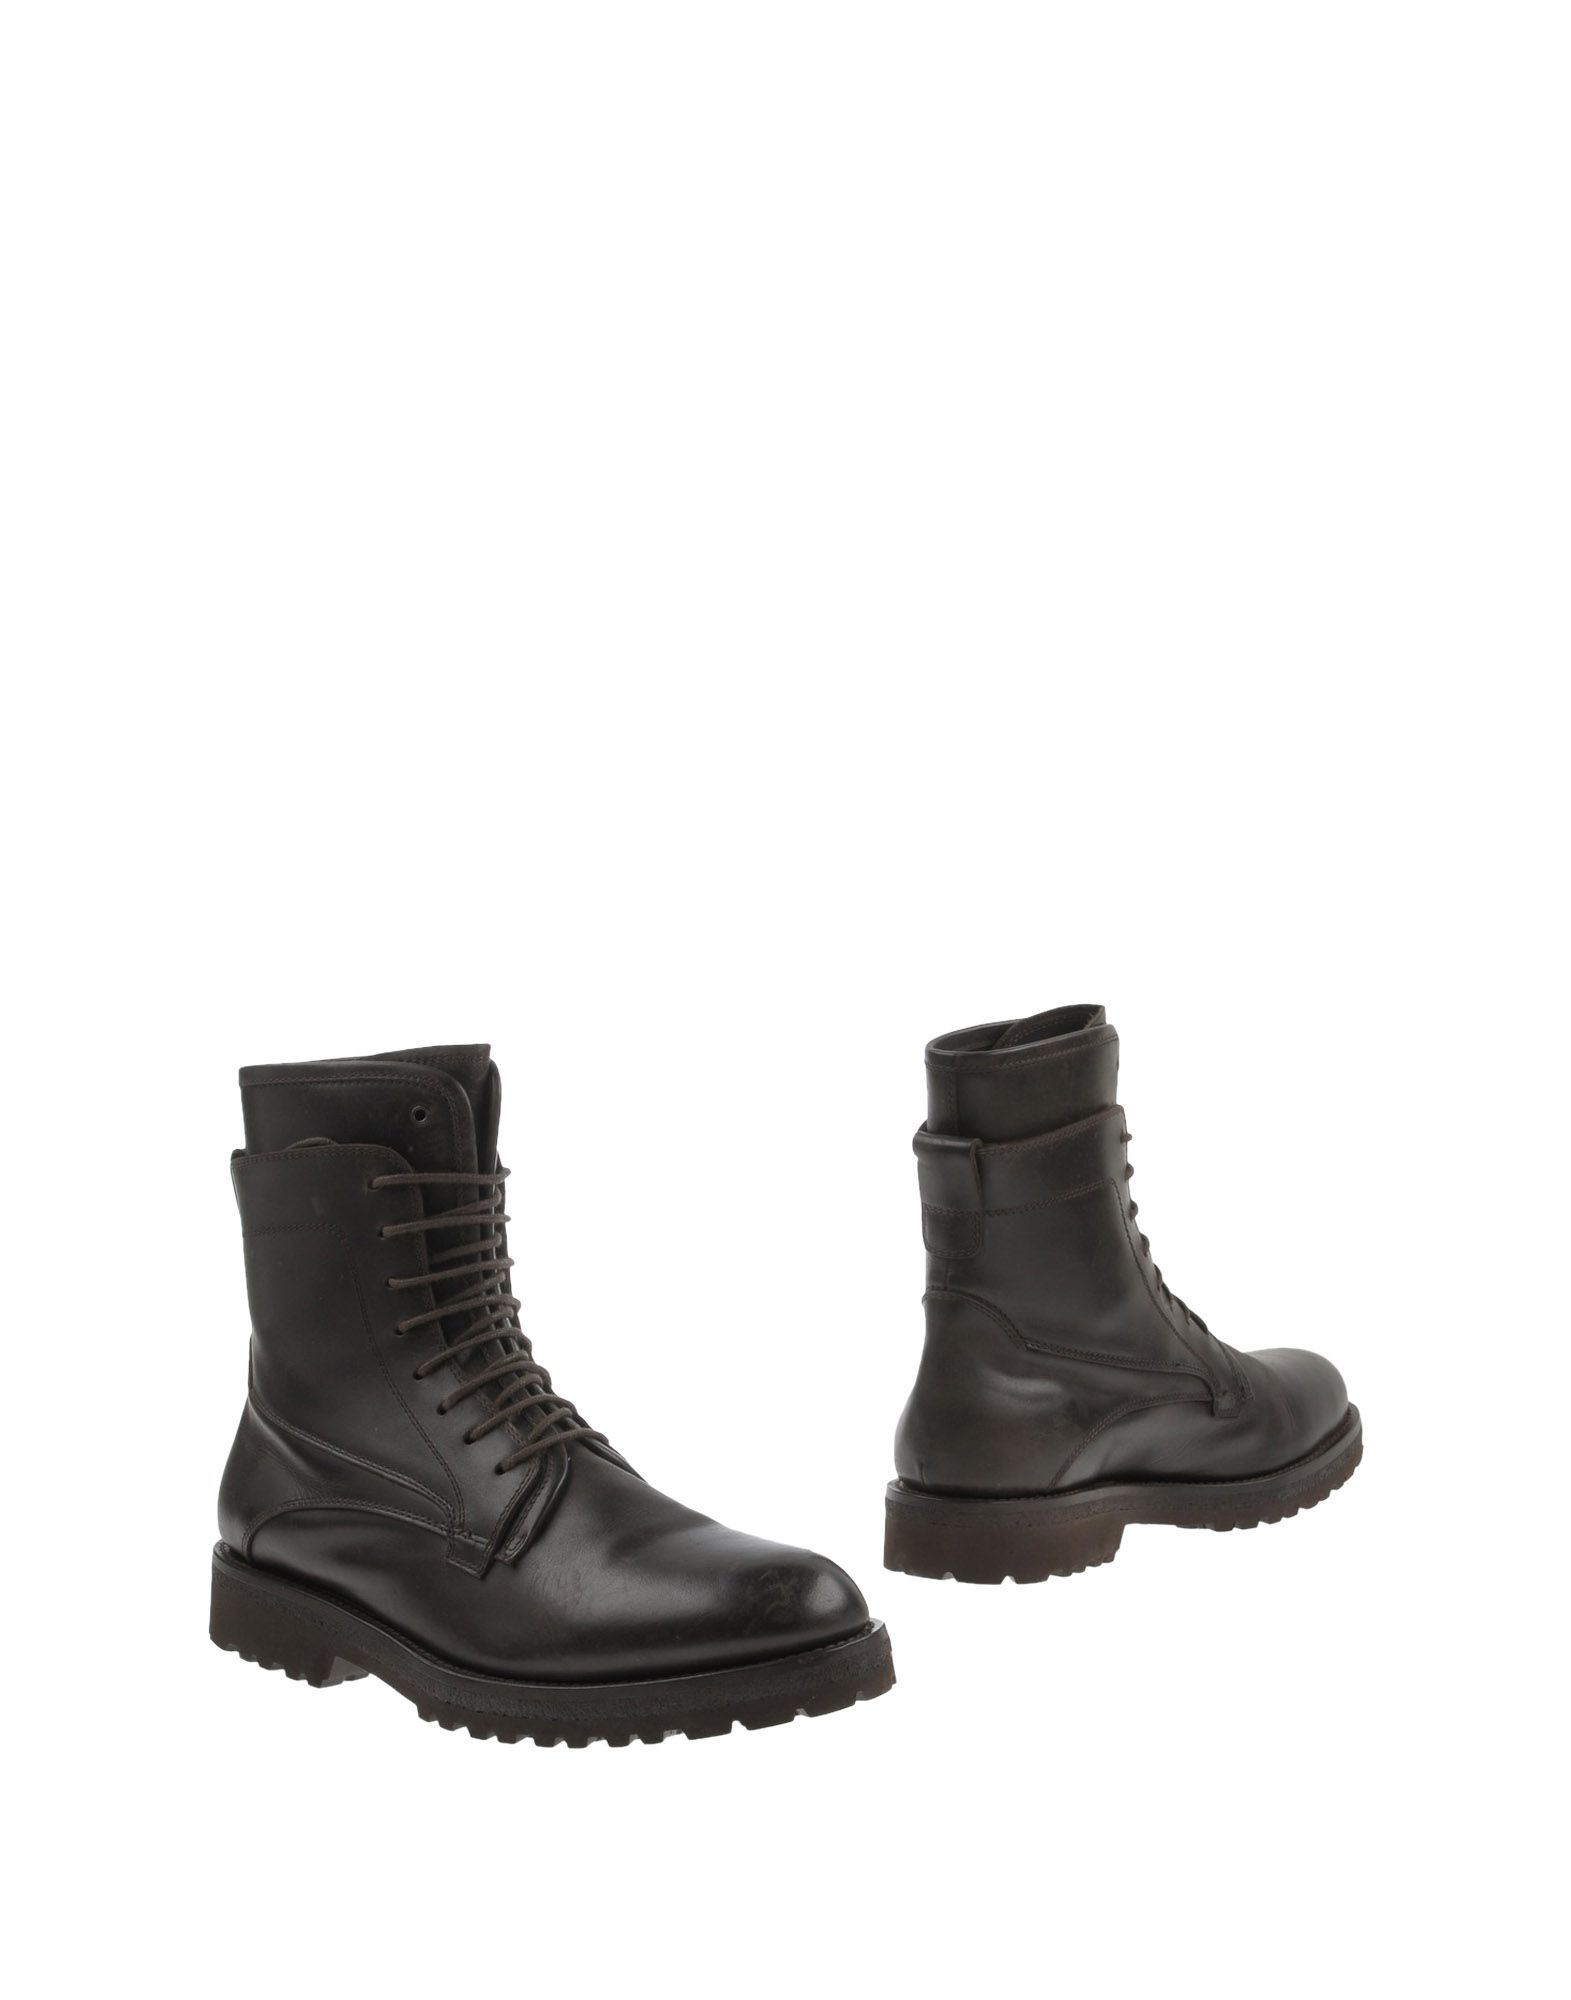 Bottine Umit Benan Homme - Bottines Umit Benan sur